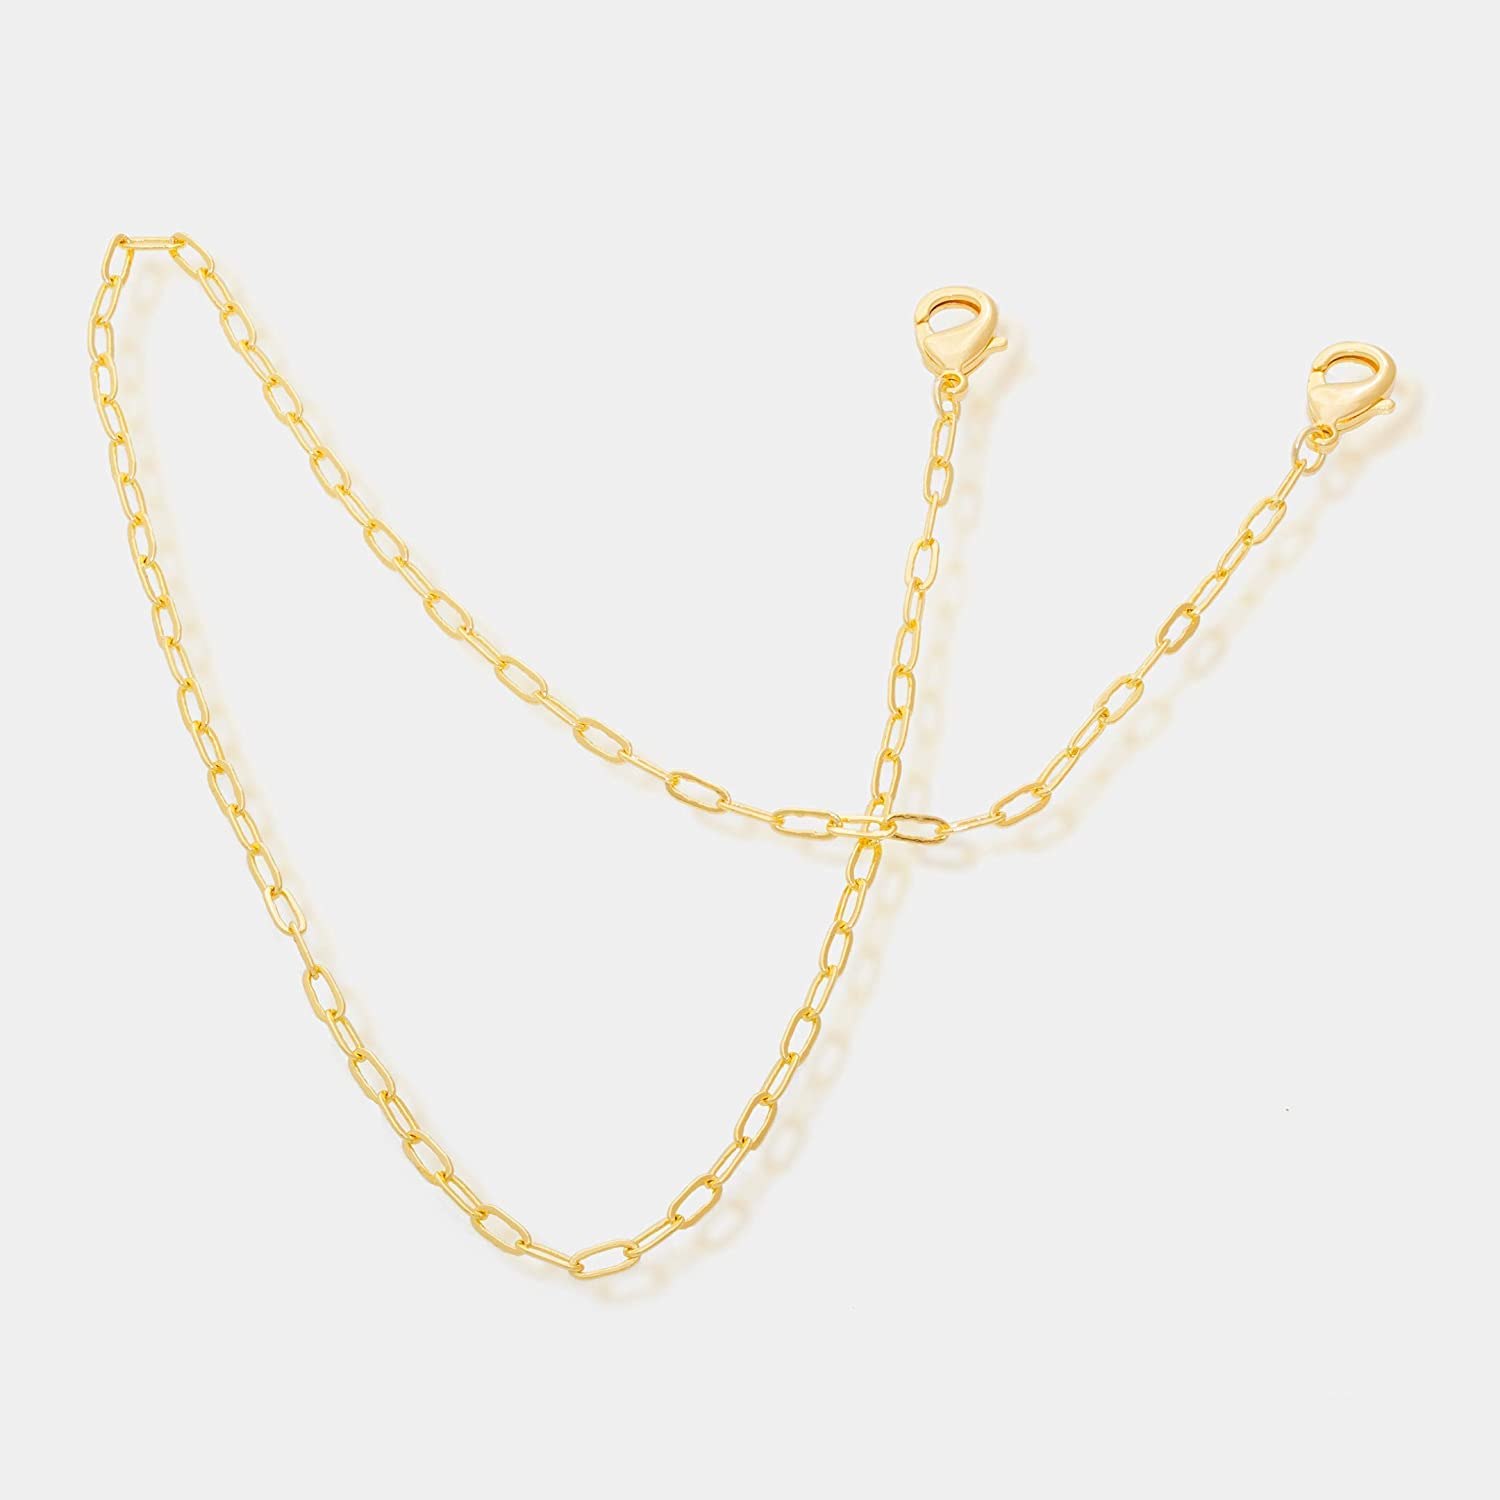 24k gold plated removable mask chain with paper clip chain